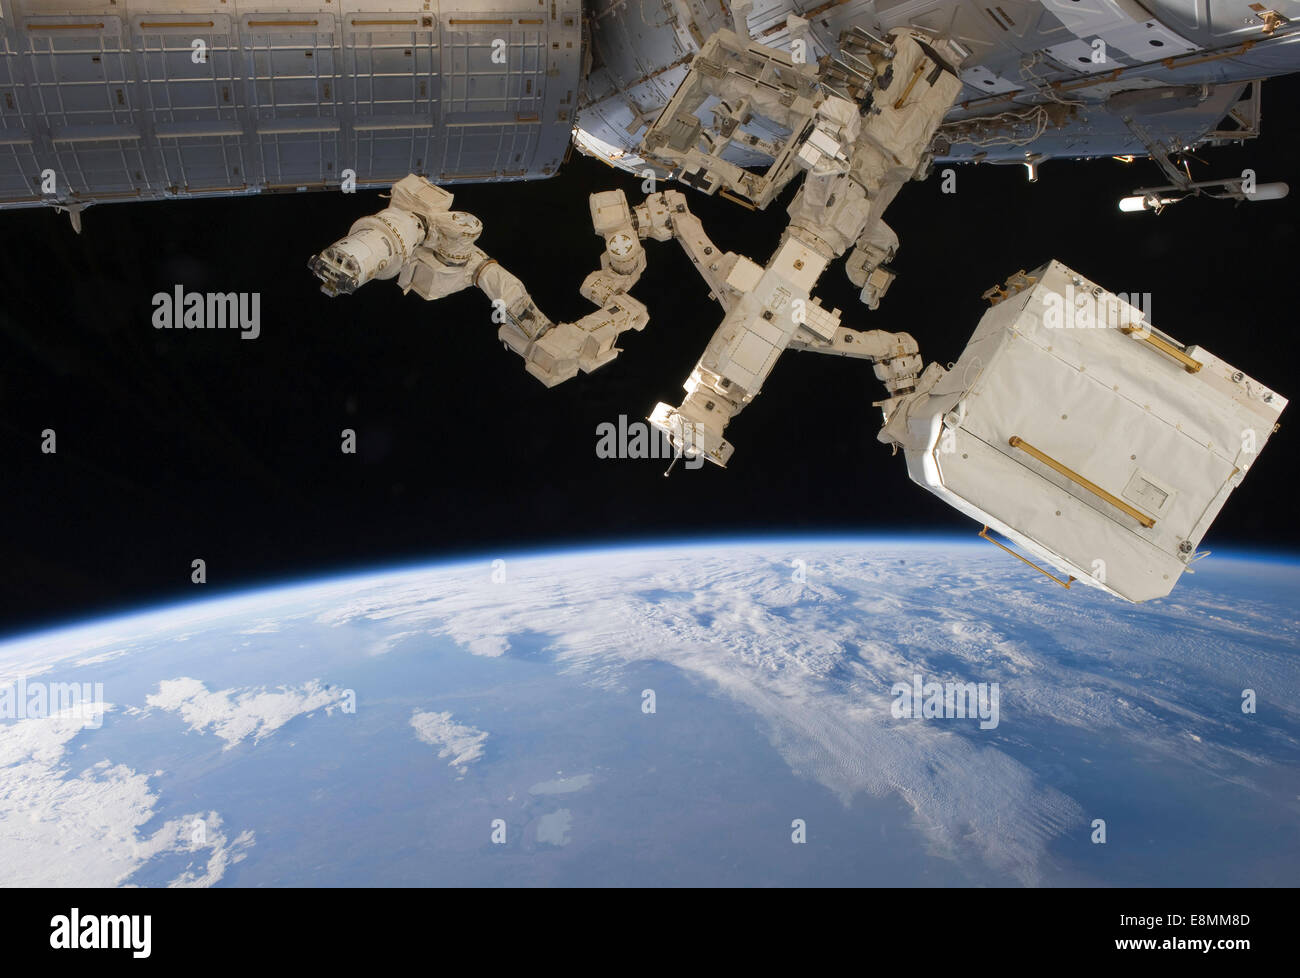 April 18, 2011 - The Canadian-built Dextre, also known as the Special Purpose Dextrous Manipulator (SPDM), backdropped - Stock Image